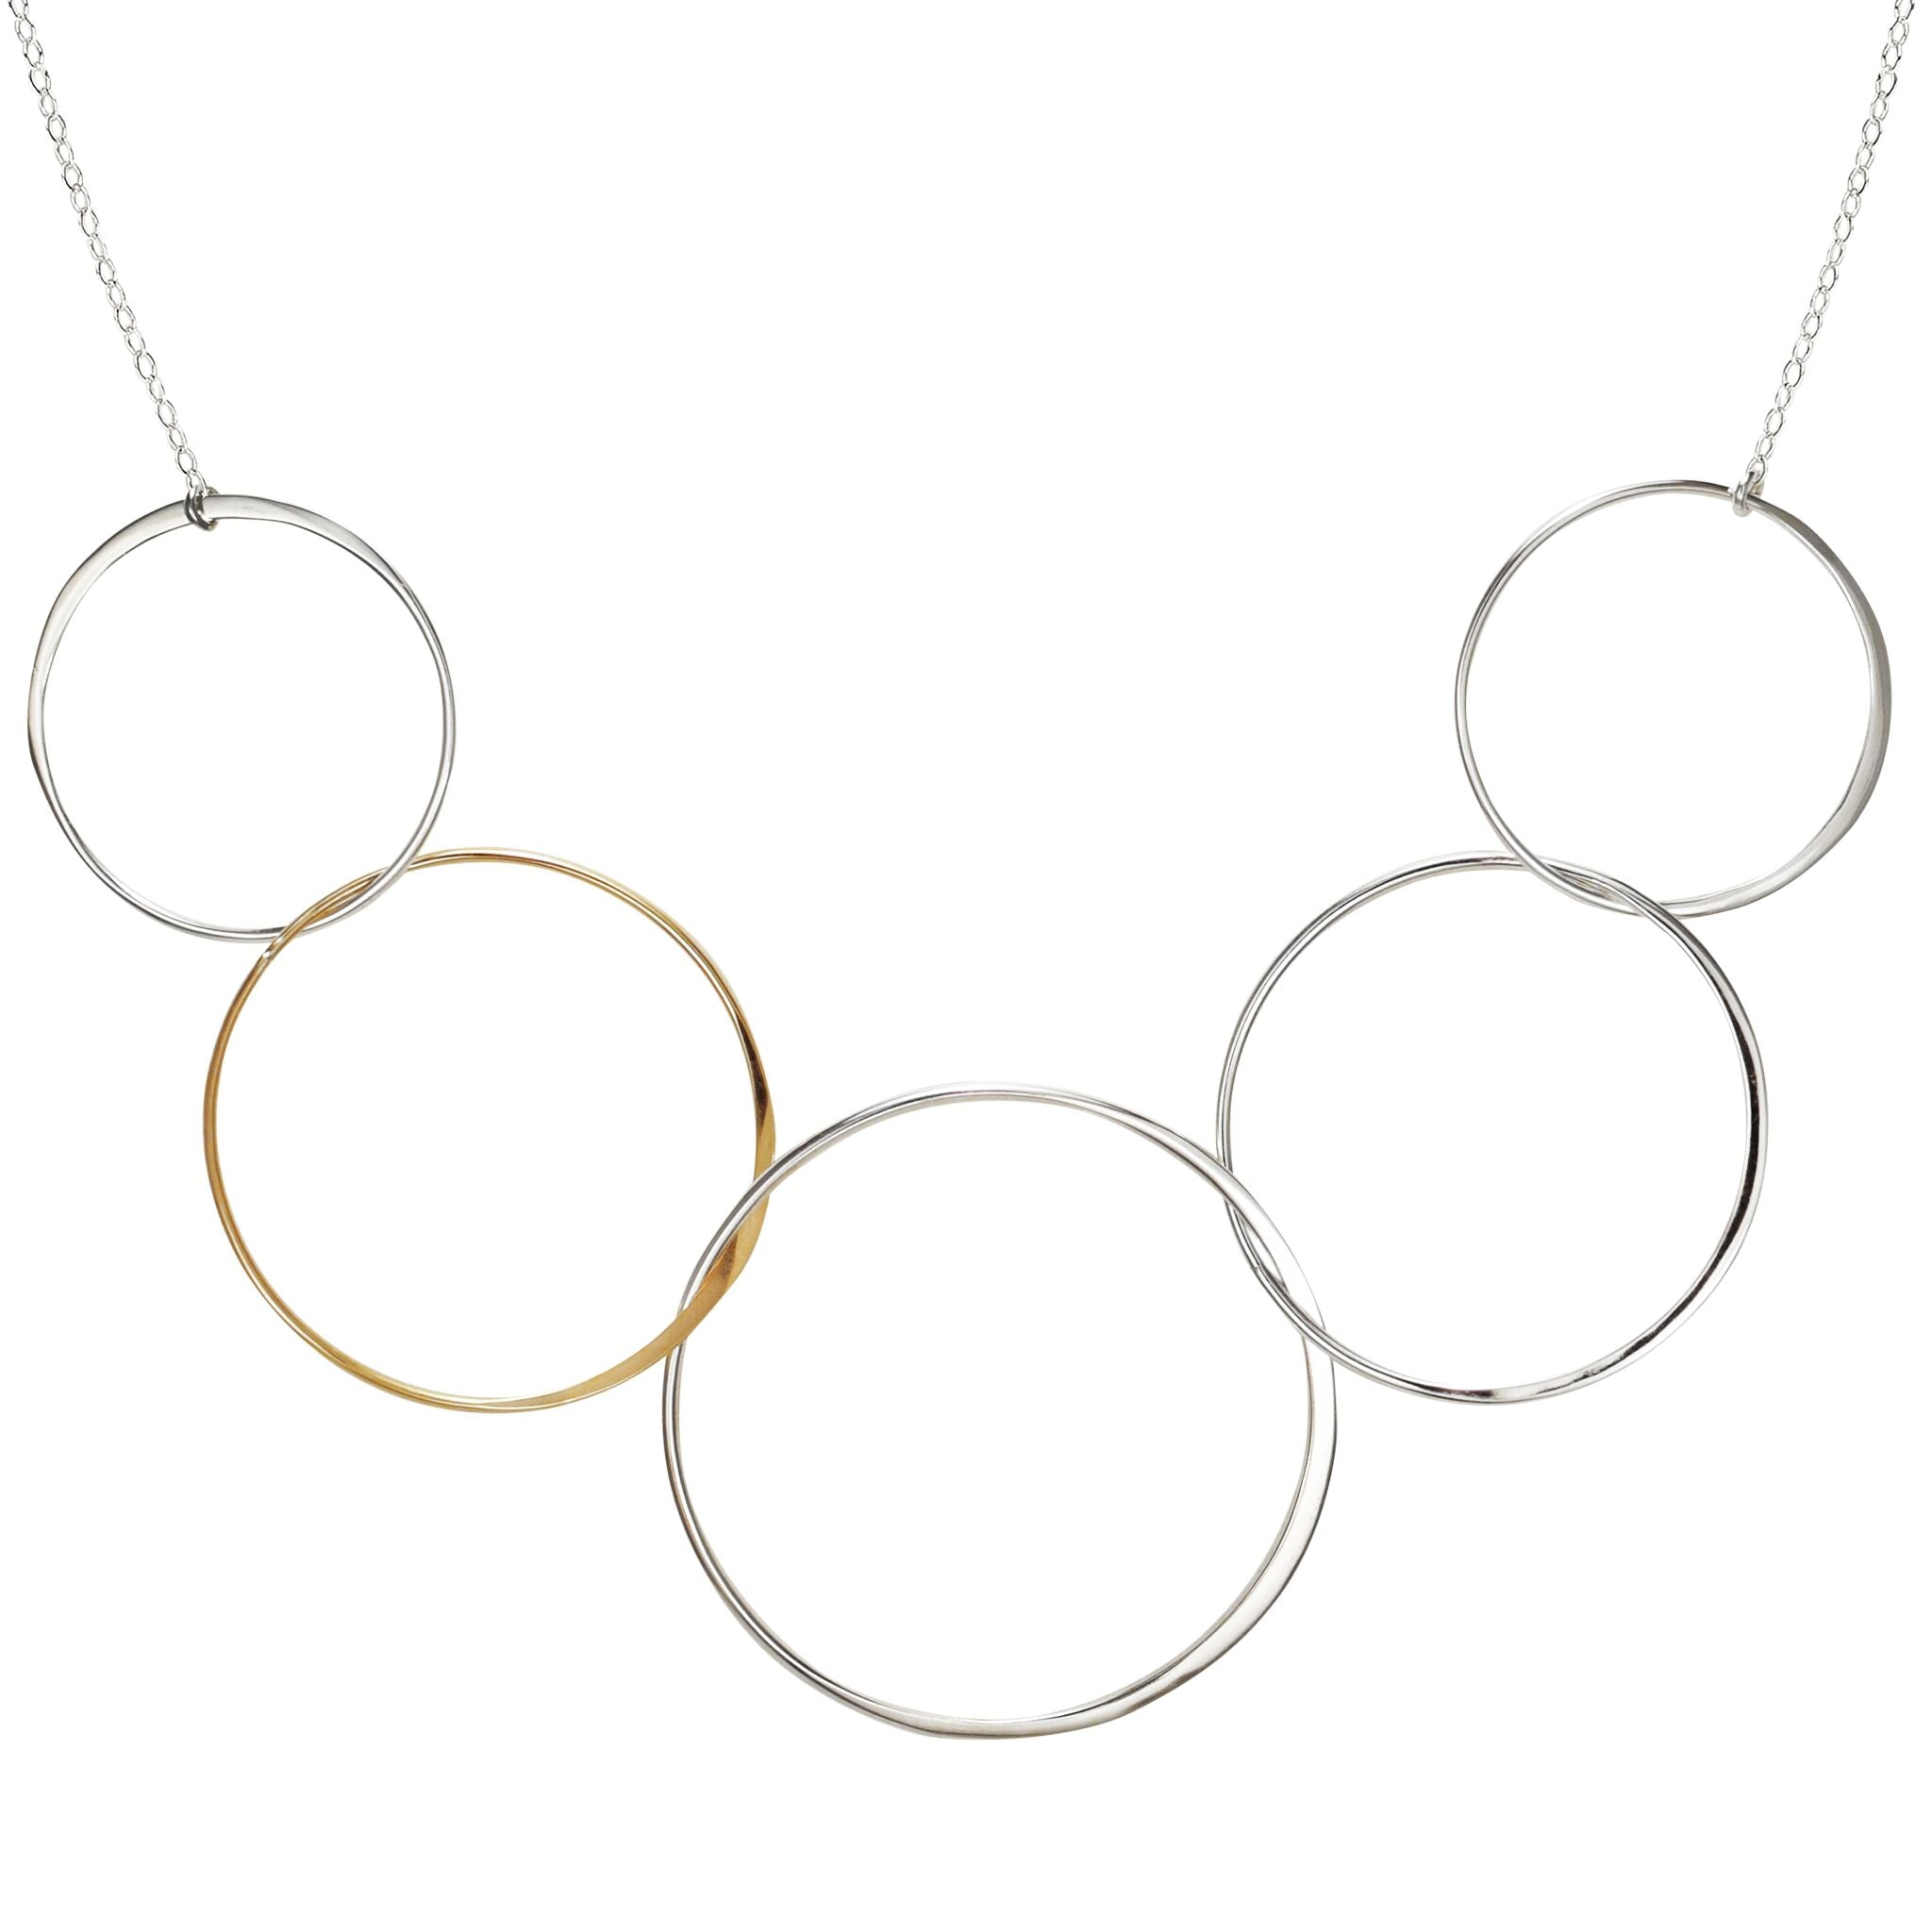 Circle Necklace Linked Circle Necklace SALE Gold and Silver XL Five Circle Necklace Mixed Metal Circle Necklace